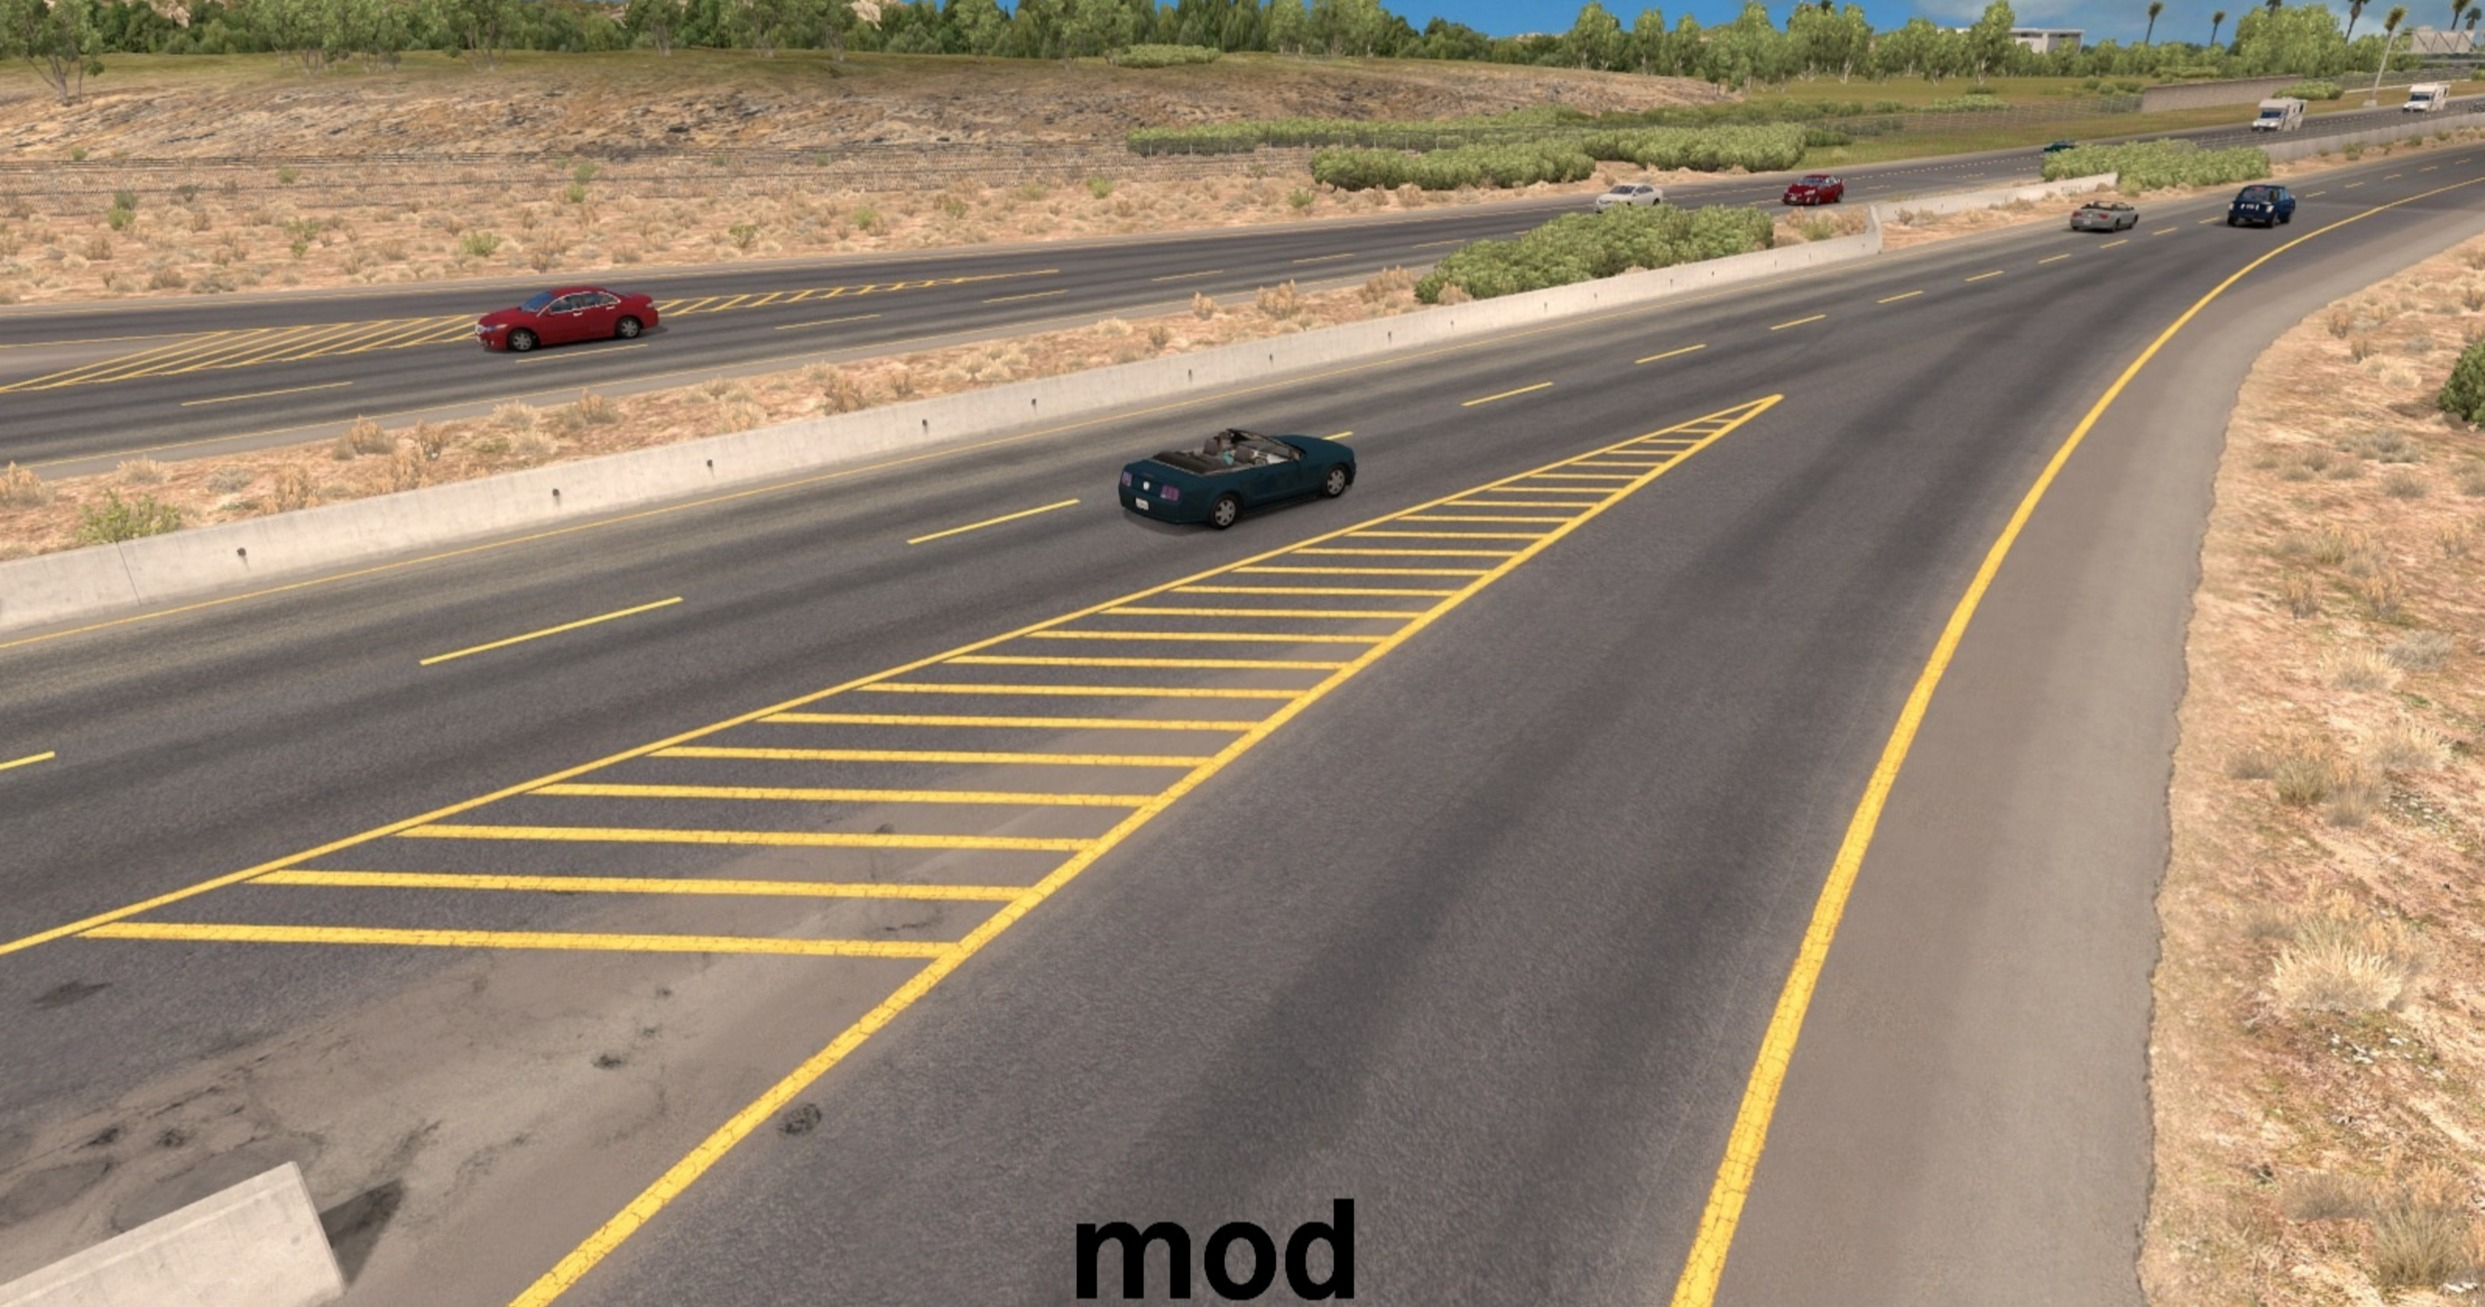 Road-Yellow-Lines-Mod-for-ATS-2.jpeg